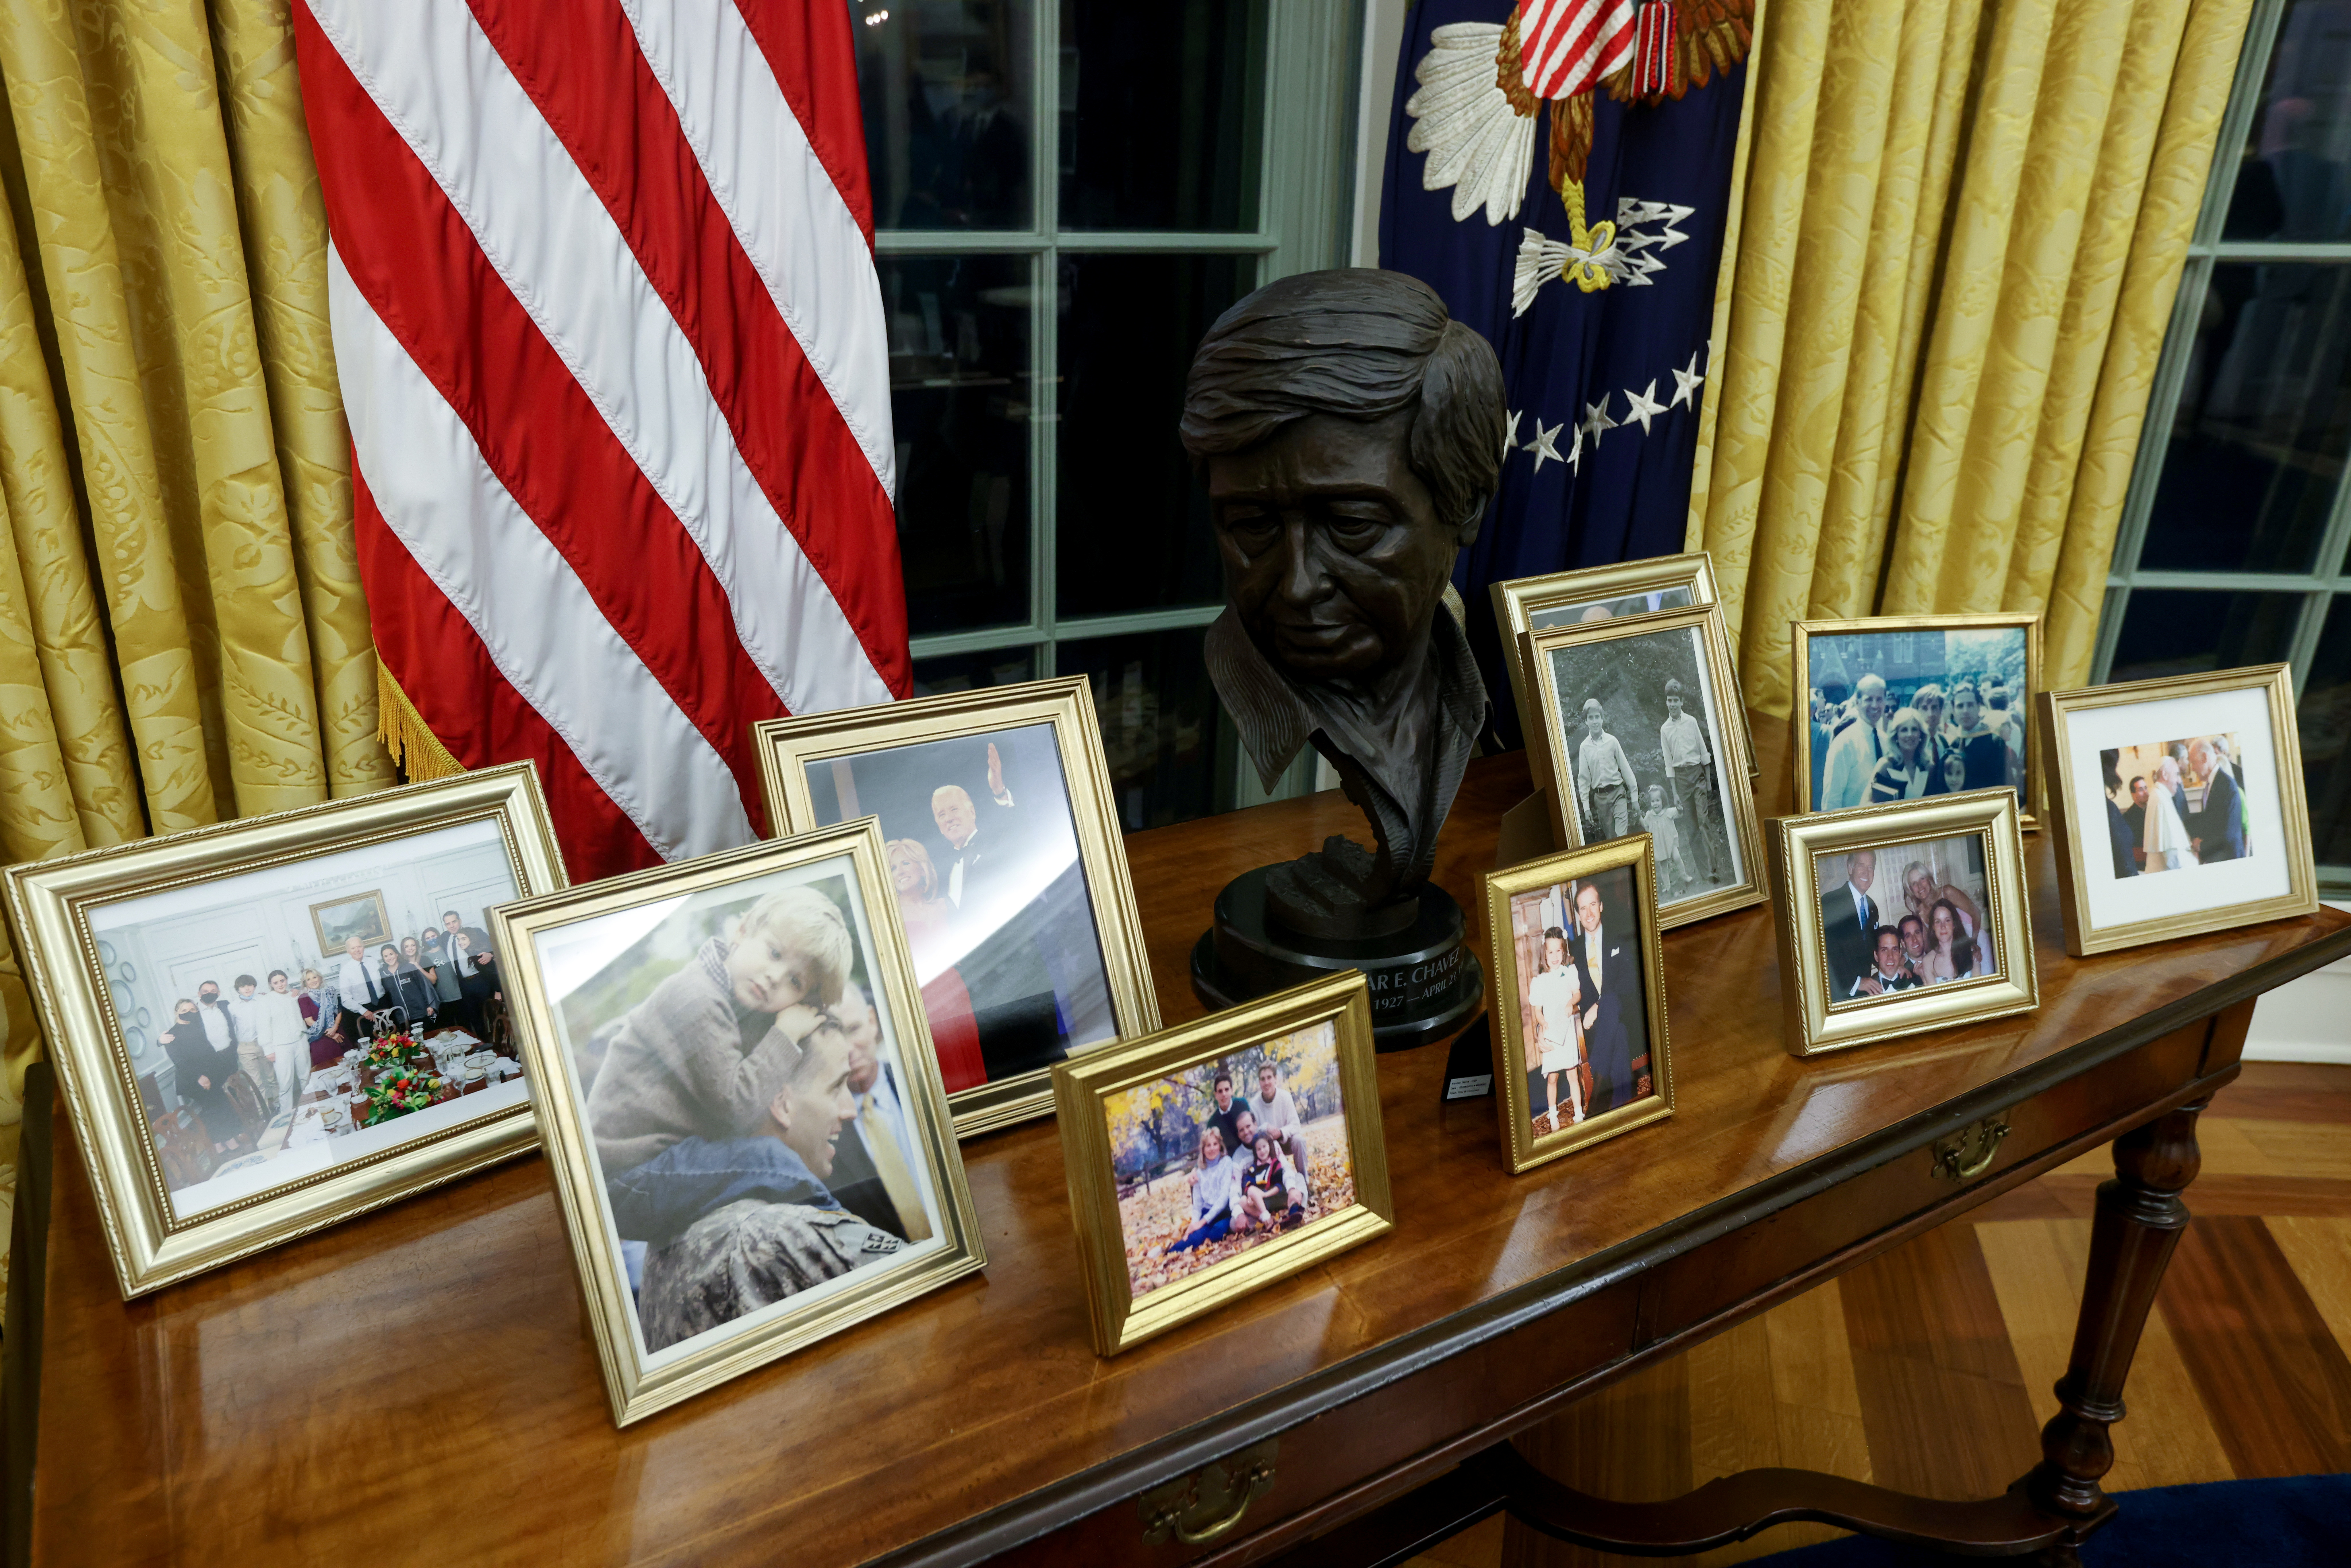 A bust of Mexican American labor leader Cesar Chavez joins family photos in the Oval Office, newly decorated for U.S. President Joe Biden at the White House in Washington, U.S. January 21, 2021.  REUTERS/Jonathan Ernst